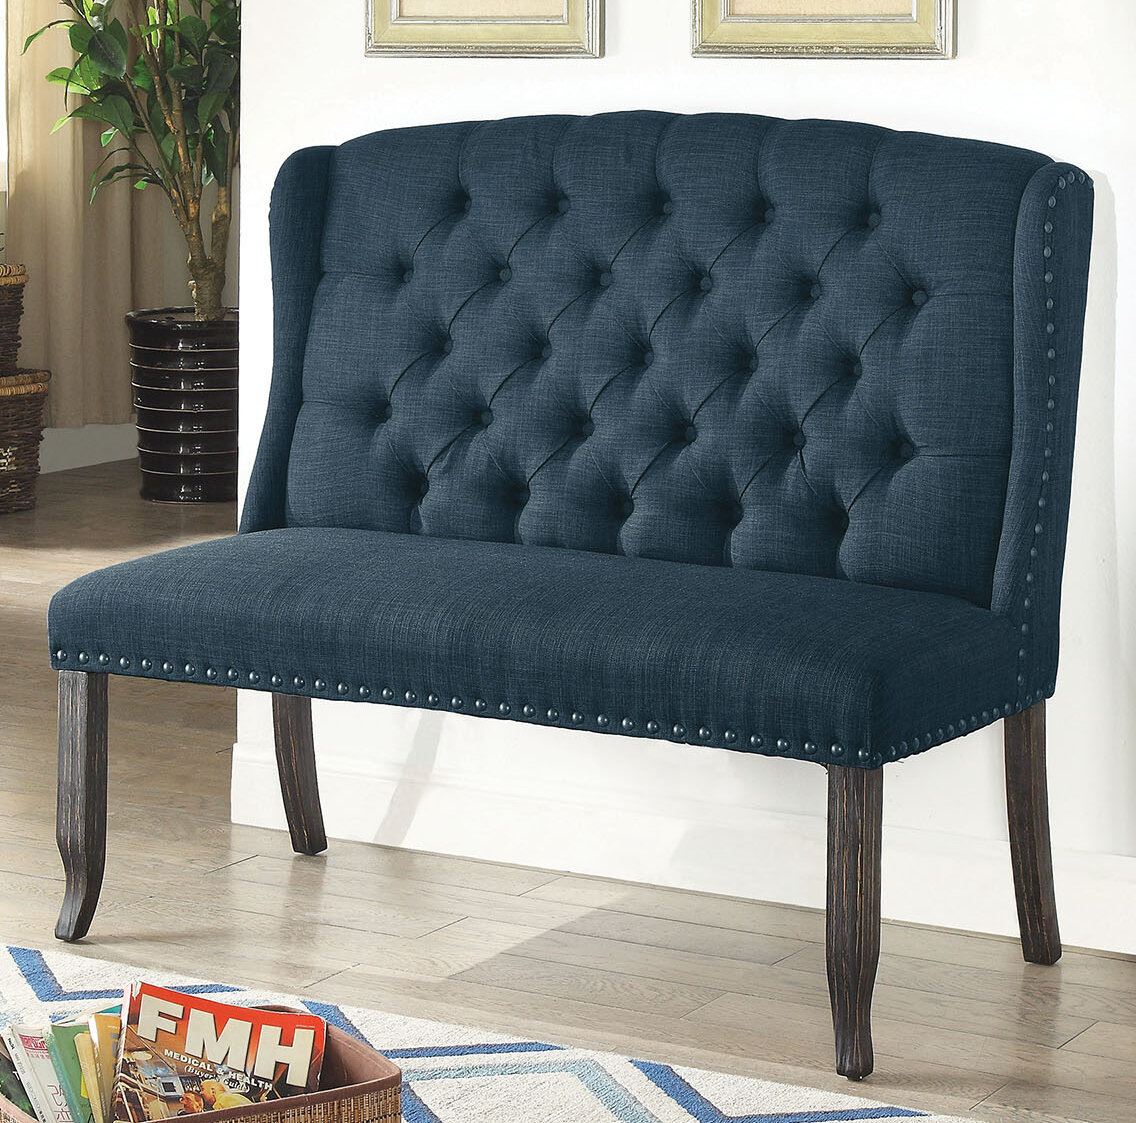 Groovy Meda Tufted High Back 2 Seater Love Seat Upholstered Bench Pabps2019 Chair Design Images Pabps2019Com